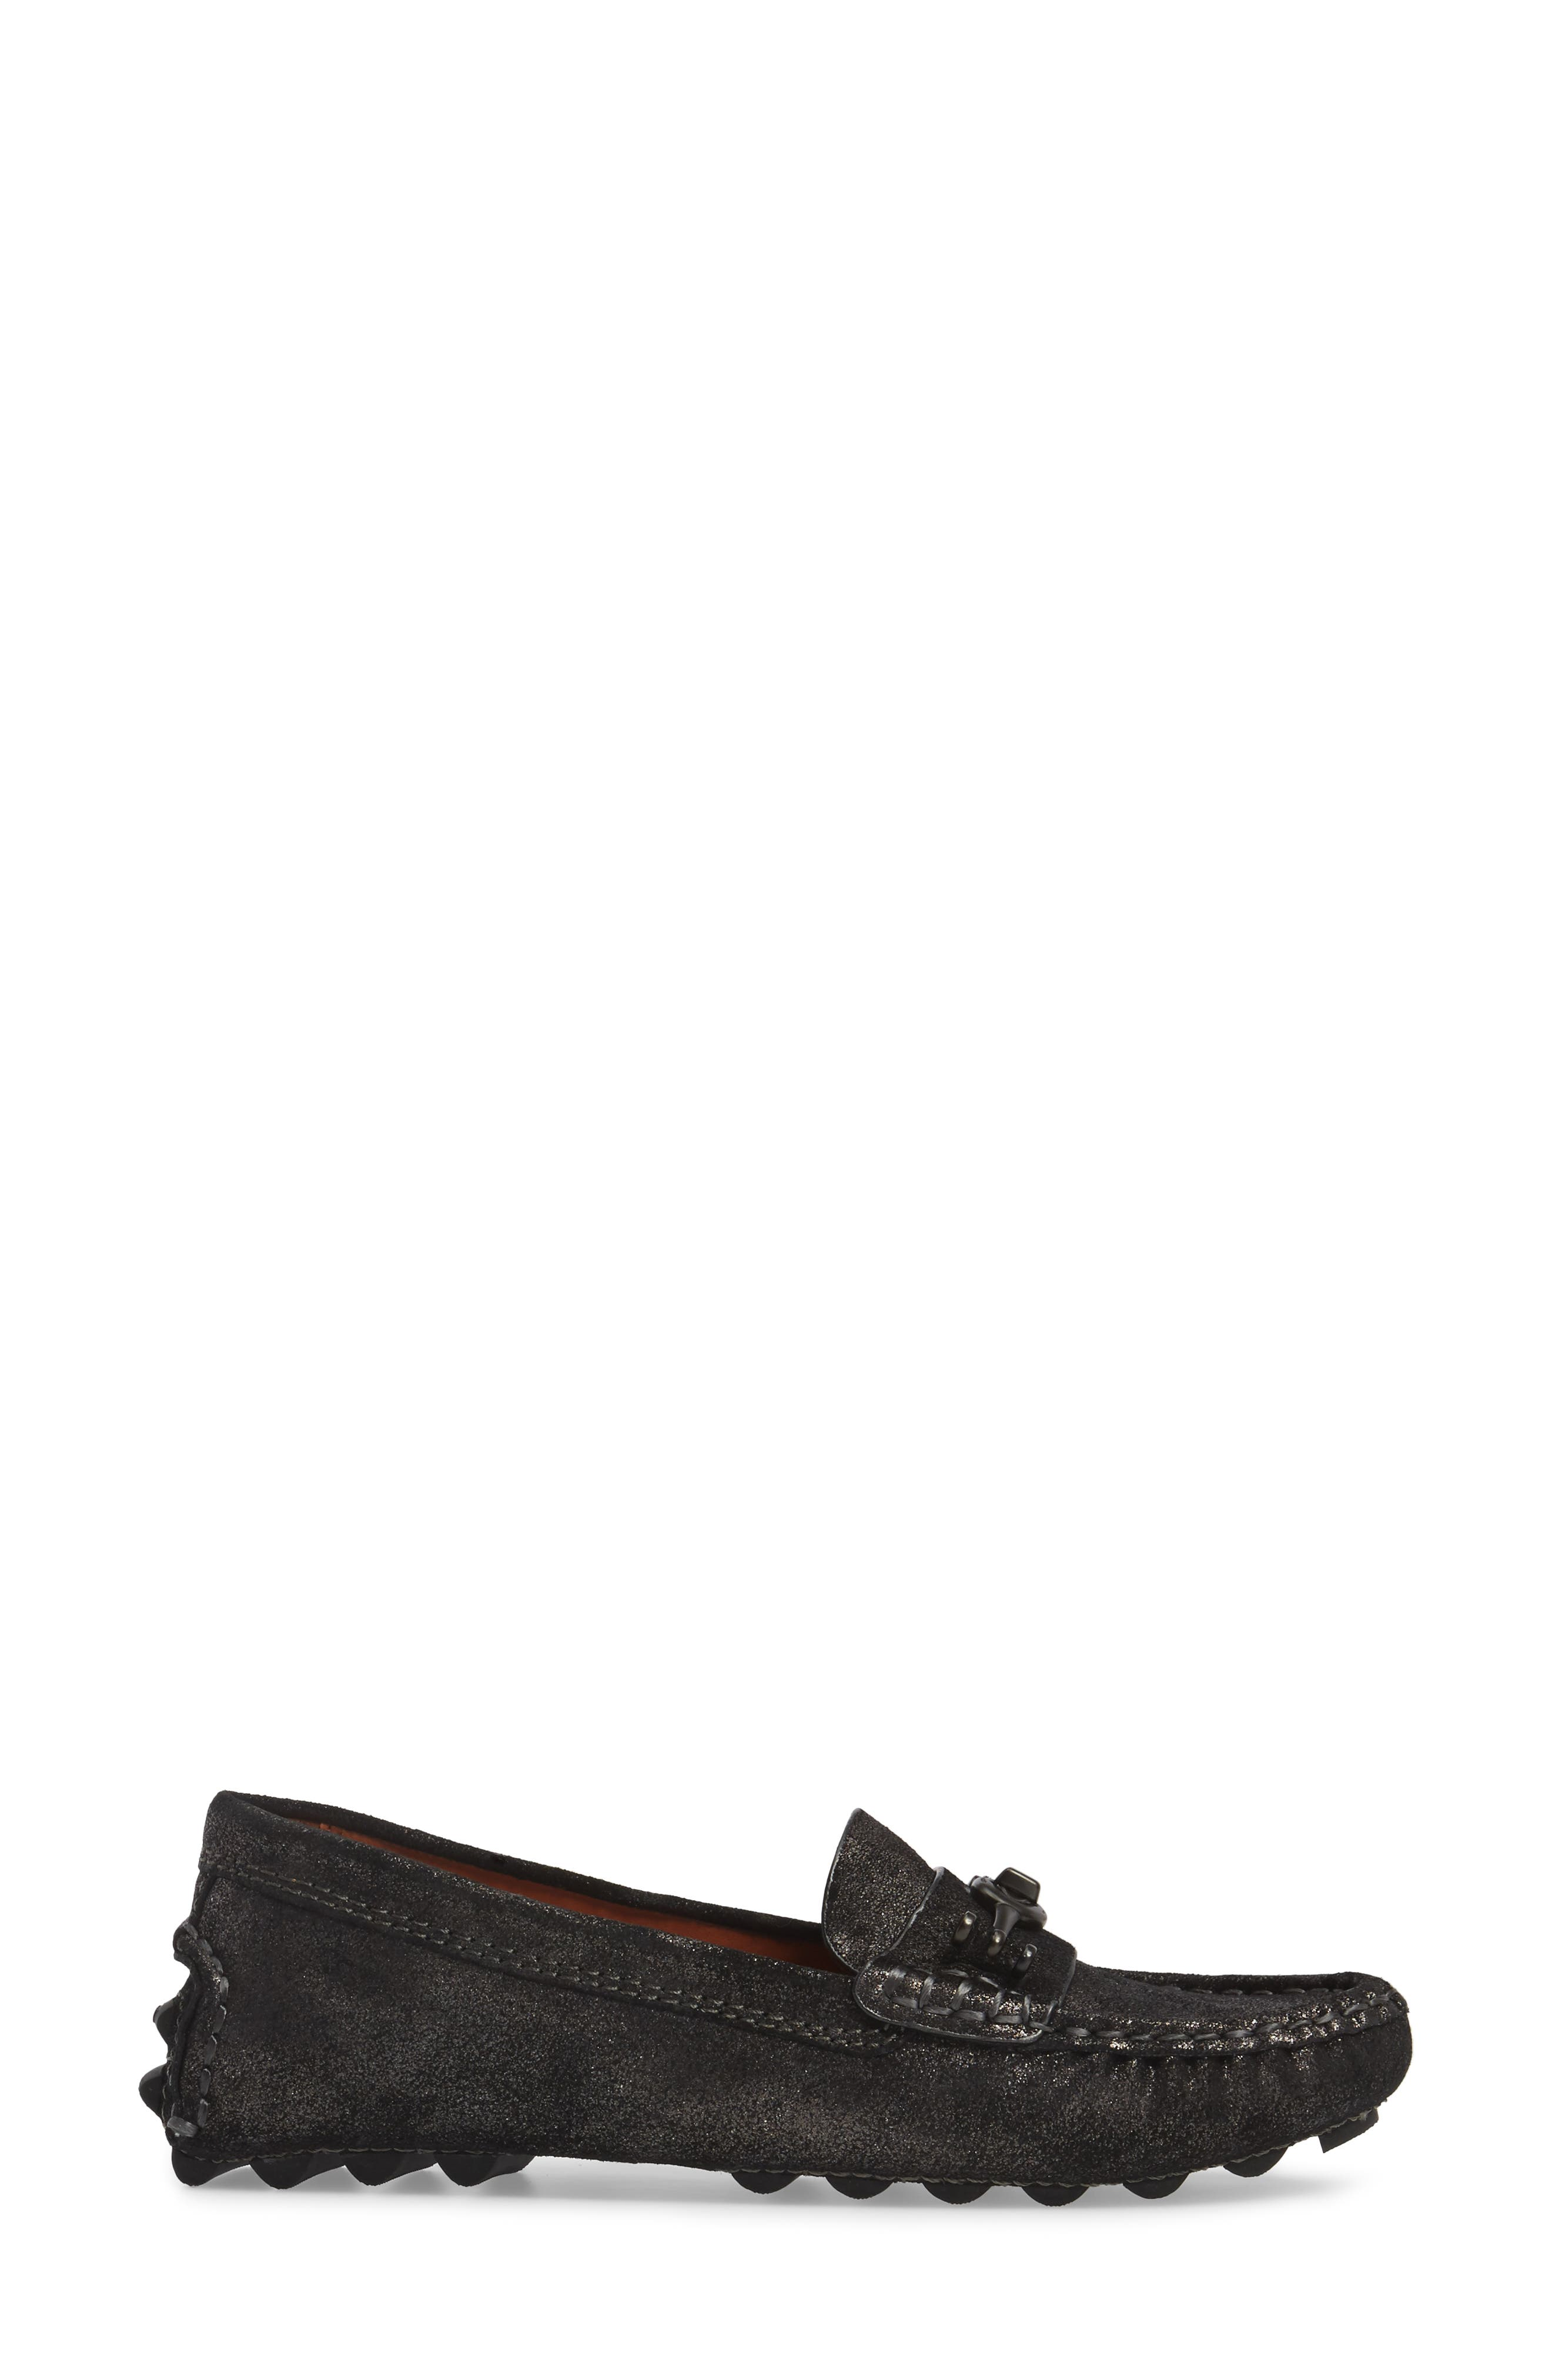 Crosby Driving Loafer,                             Alternate thumbnail 3, color,                             Anthracite Suede